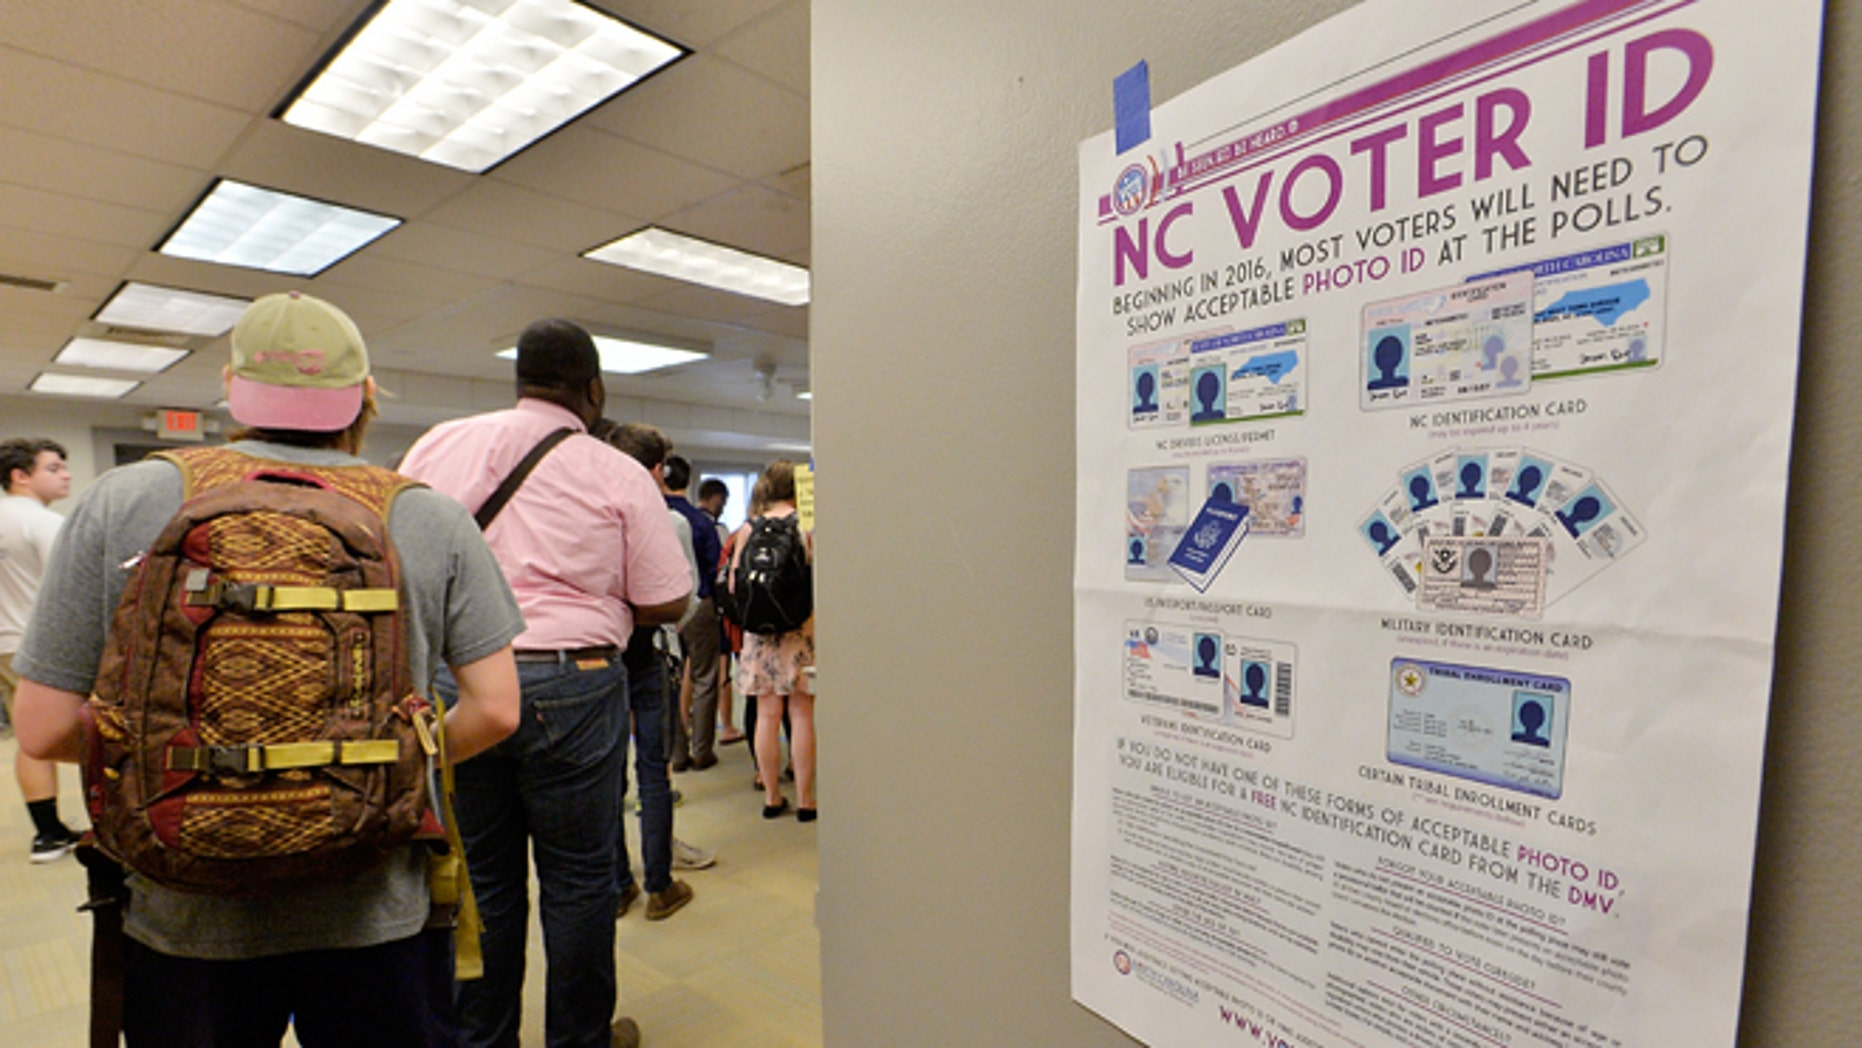 Students wait in line to vote in the primaries at Pullen Community Center on March 15, 2016 in Raleigh, North Carolina.